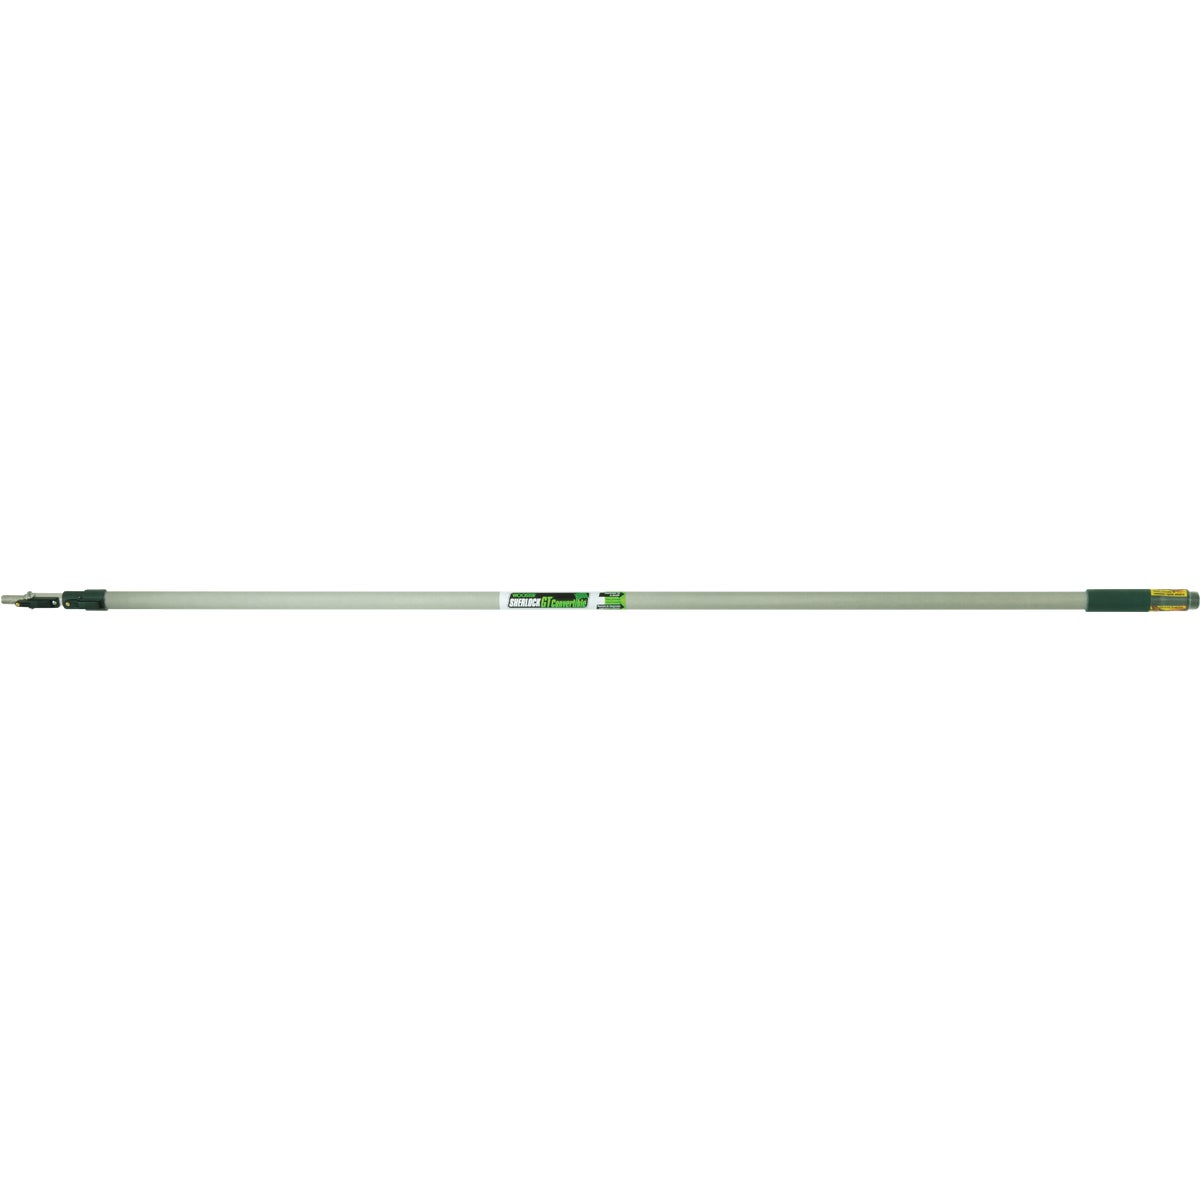 6-12 CONVRTBLE EXTN POLE - R092 by Wooster Brush Co